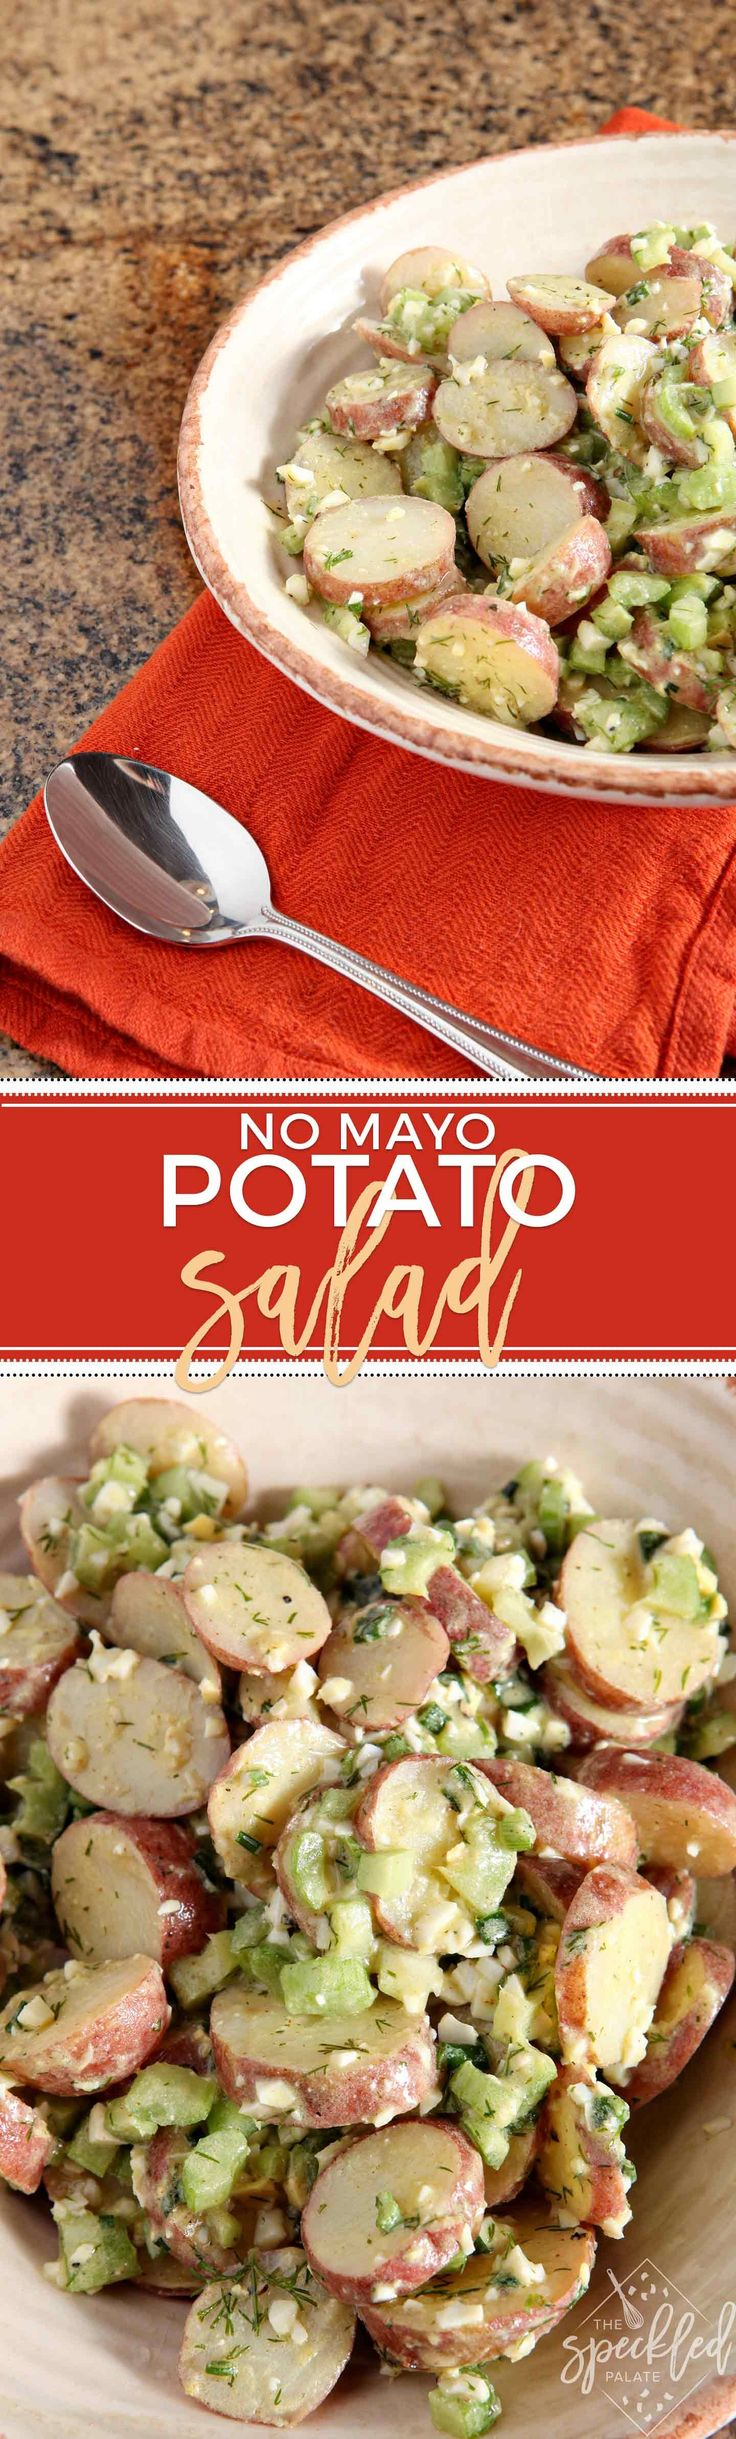 No Mayo Potato Salad is a lighter rendition of the classic. Serve at any cookout this summer and expect compliments on this surprisingly creamy side dish.